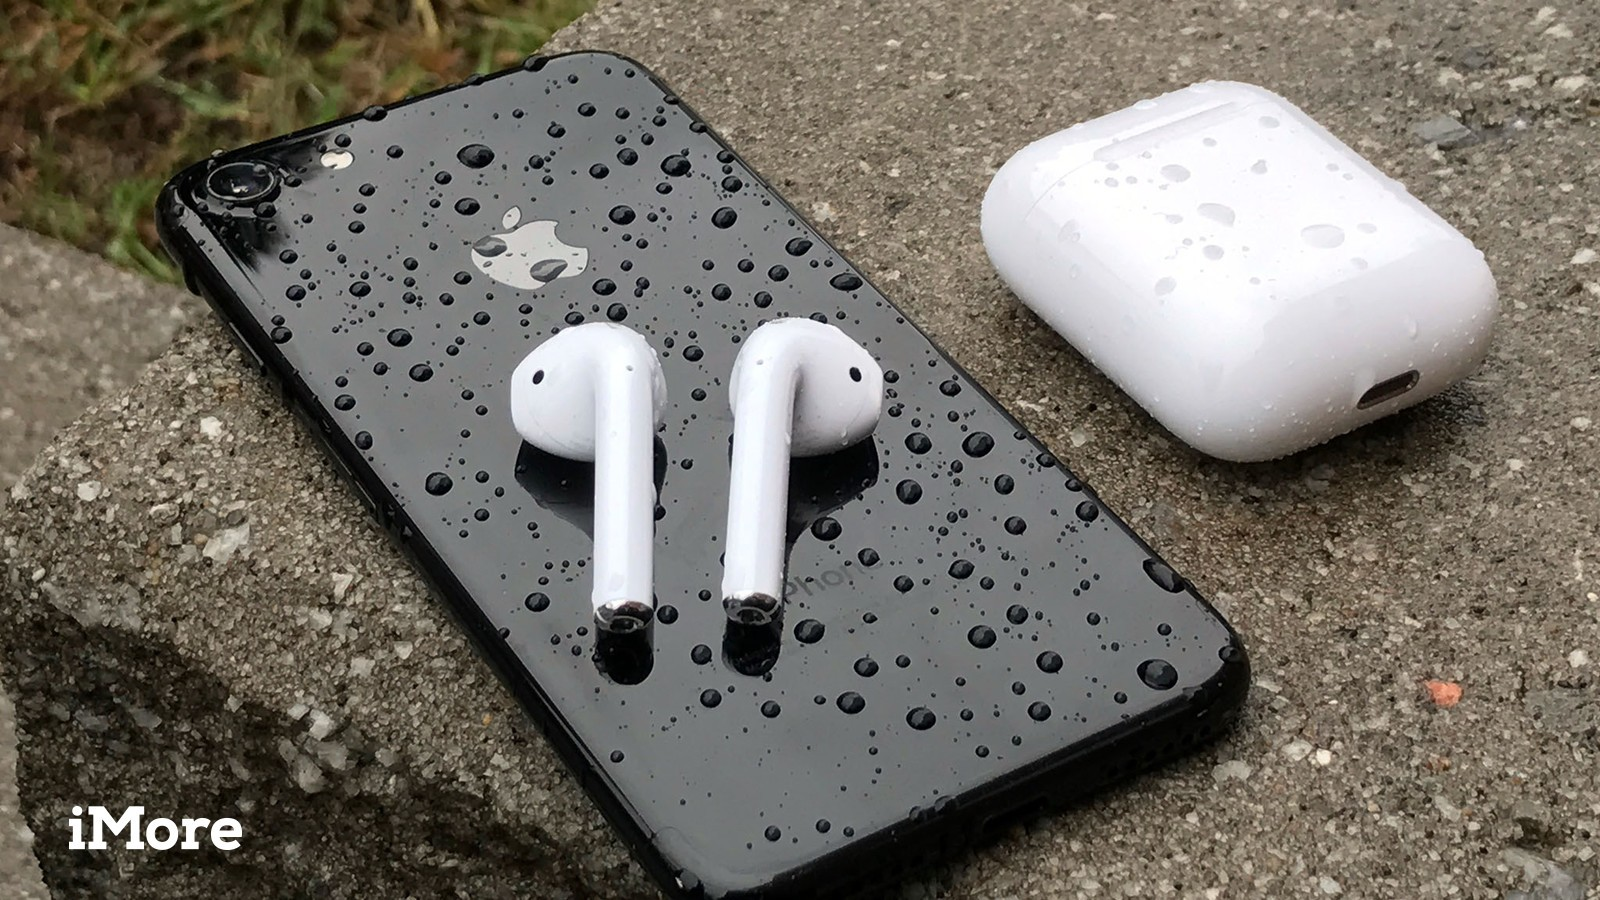 AirPods with iPhone 7